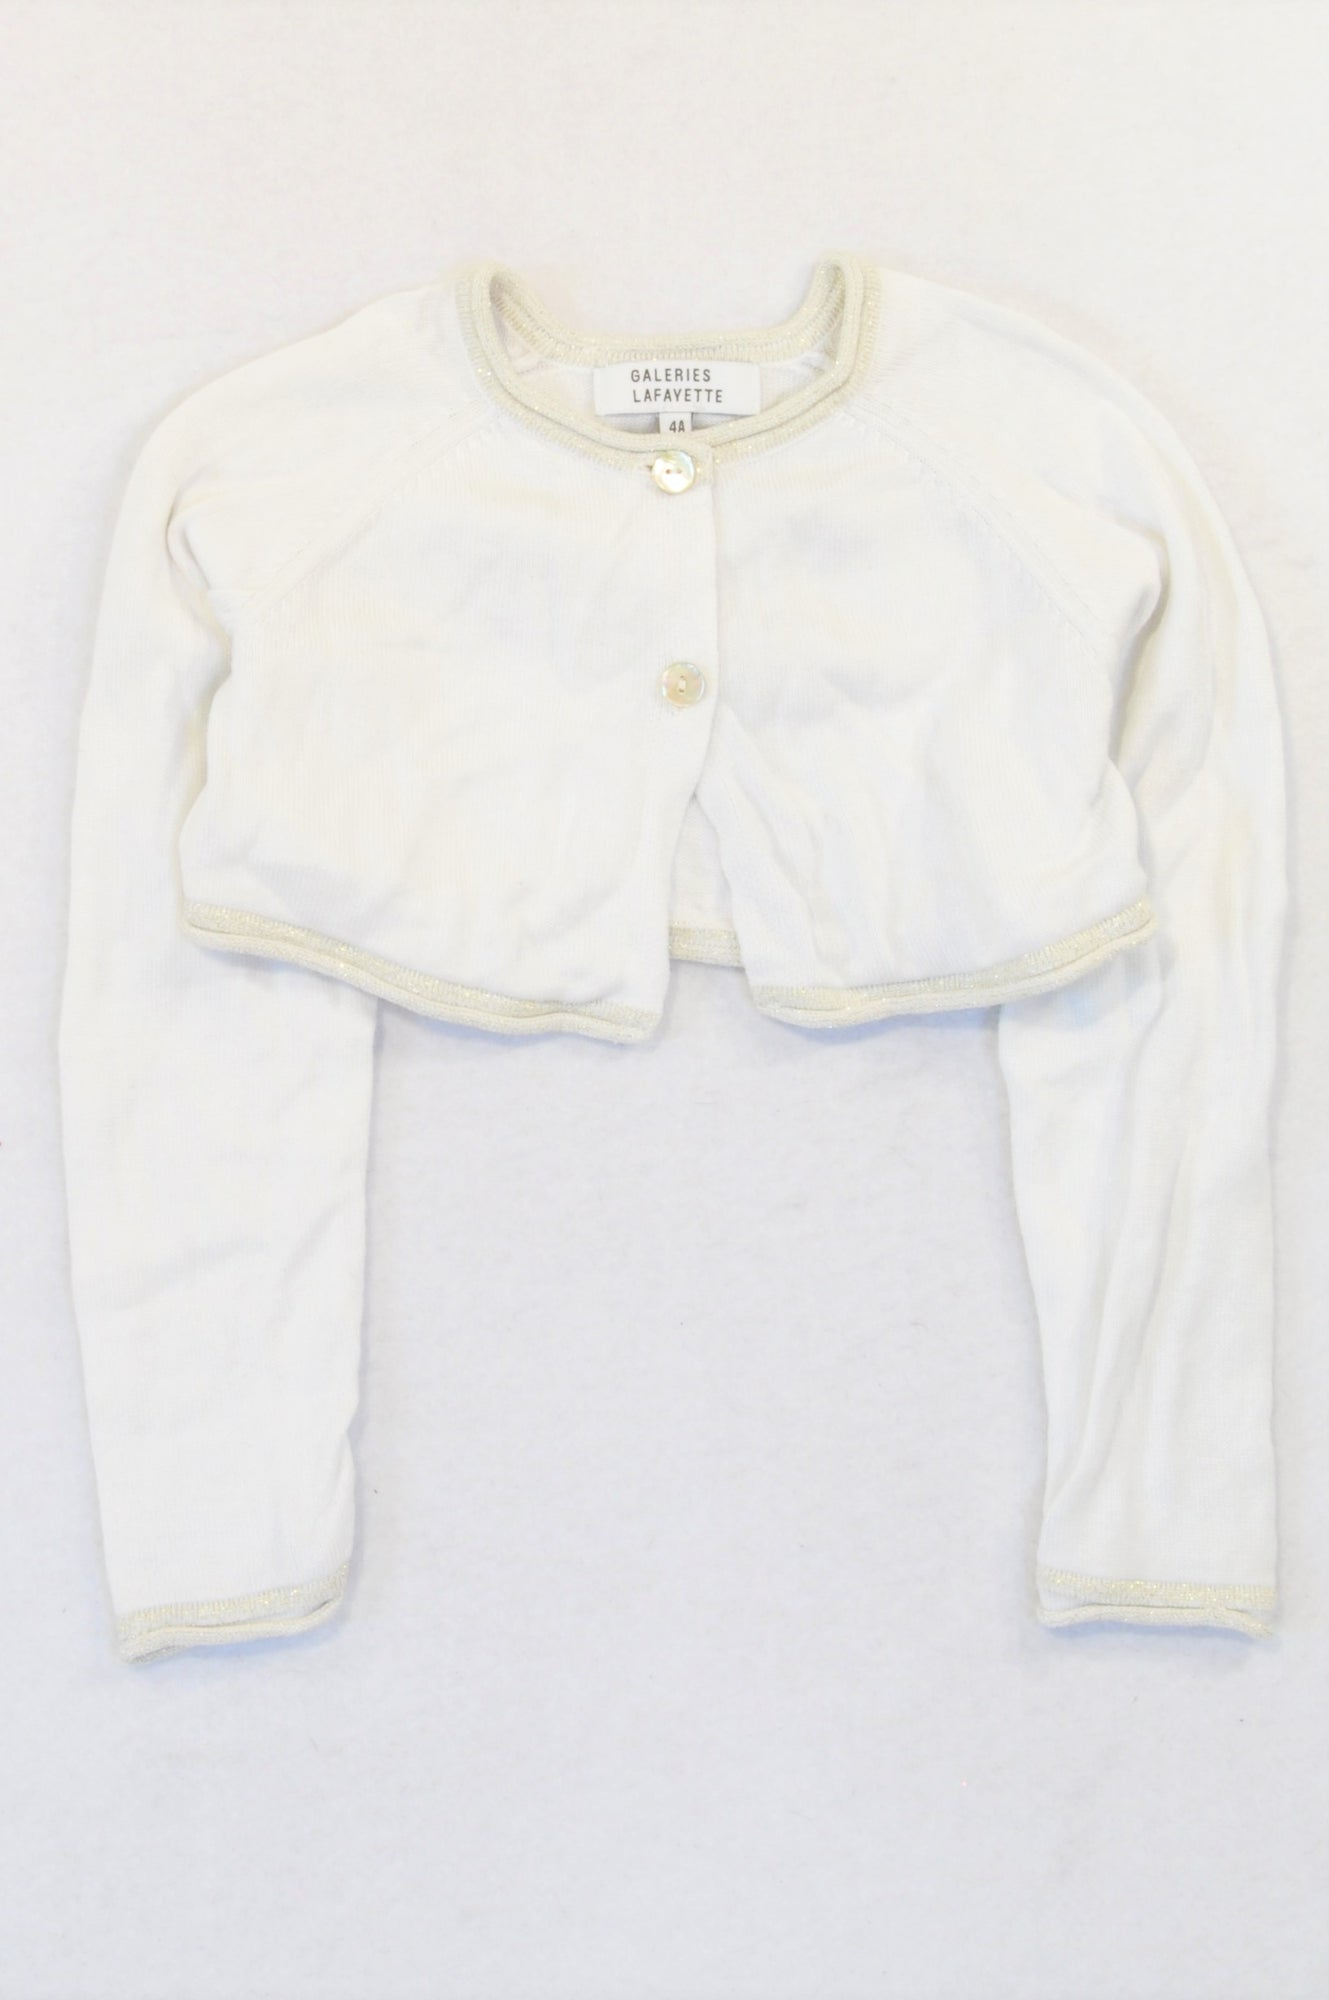 Galeries Lafayette White Knit Gold Trim Cropped Cardigan Girls 3-4 years